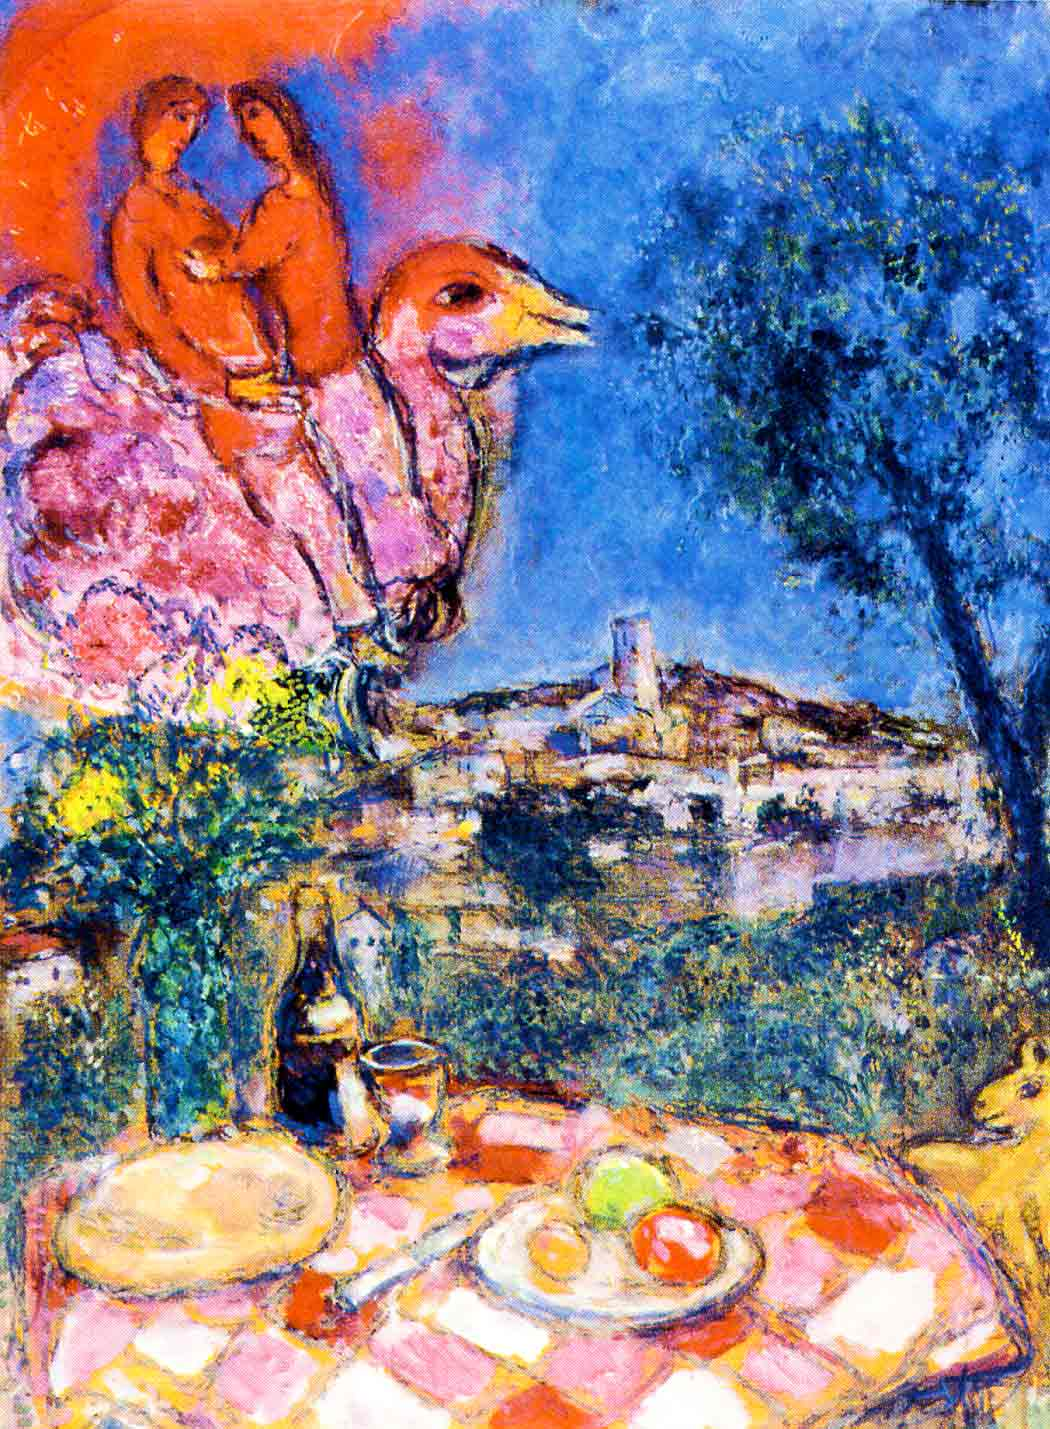 Pftw marc chagall for Chagall st paul de vence